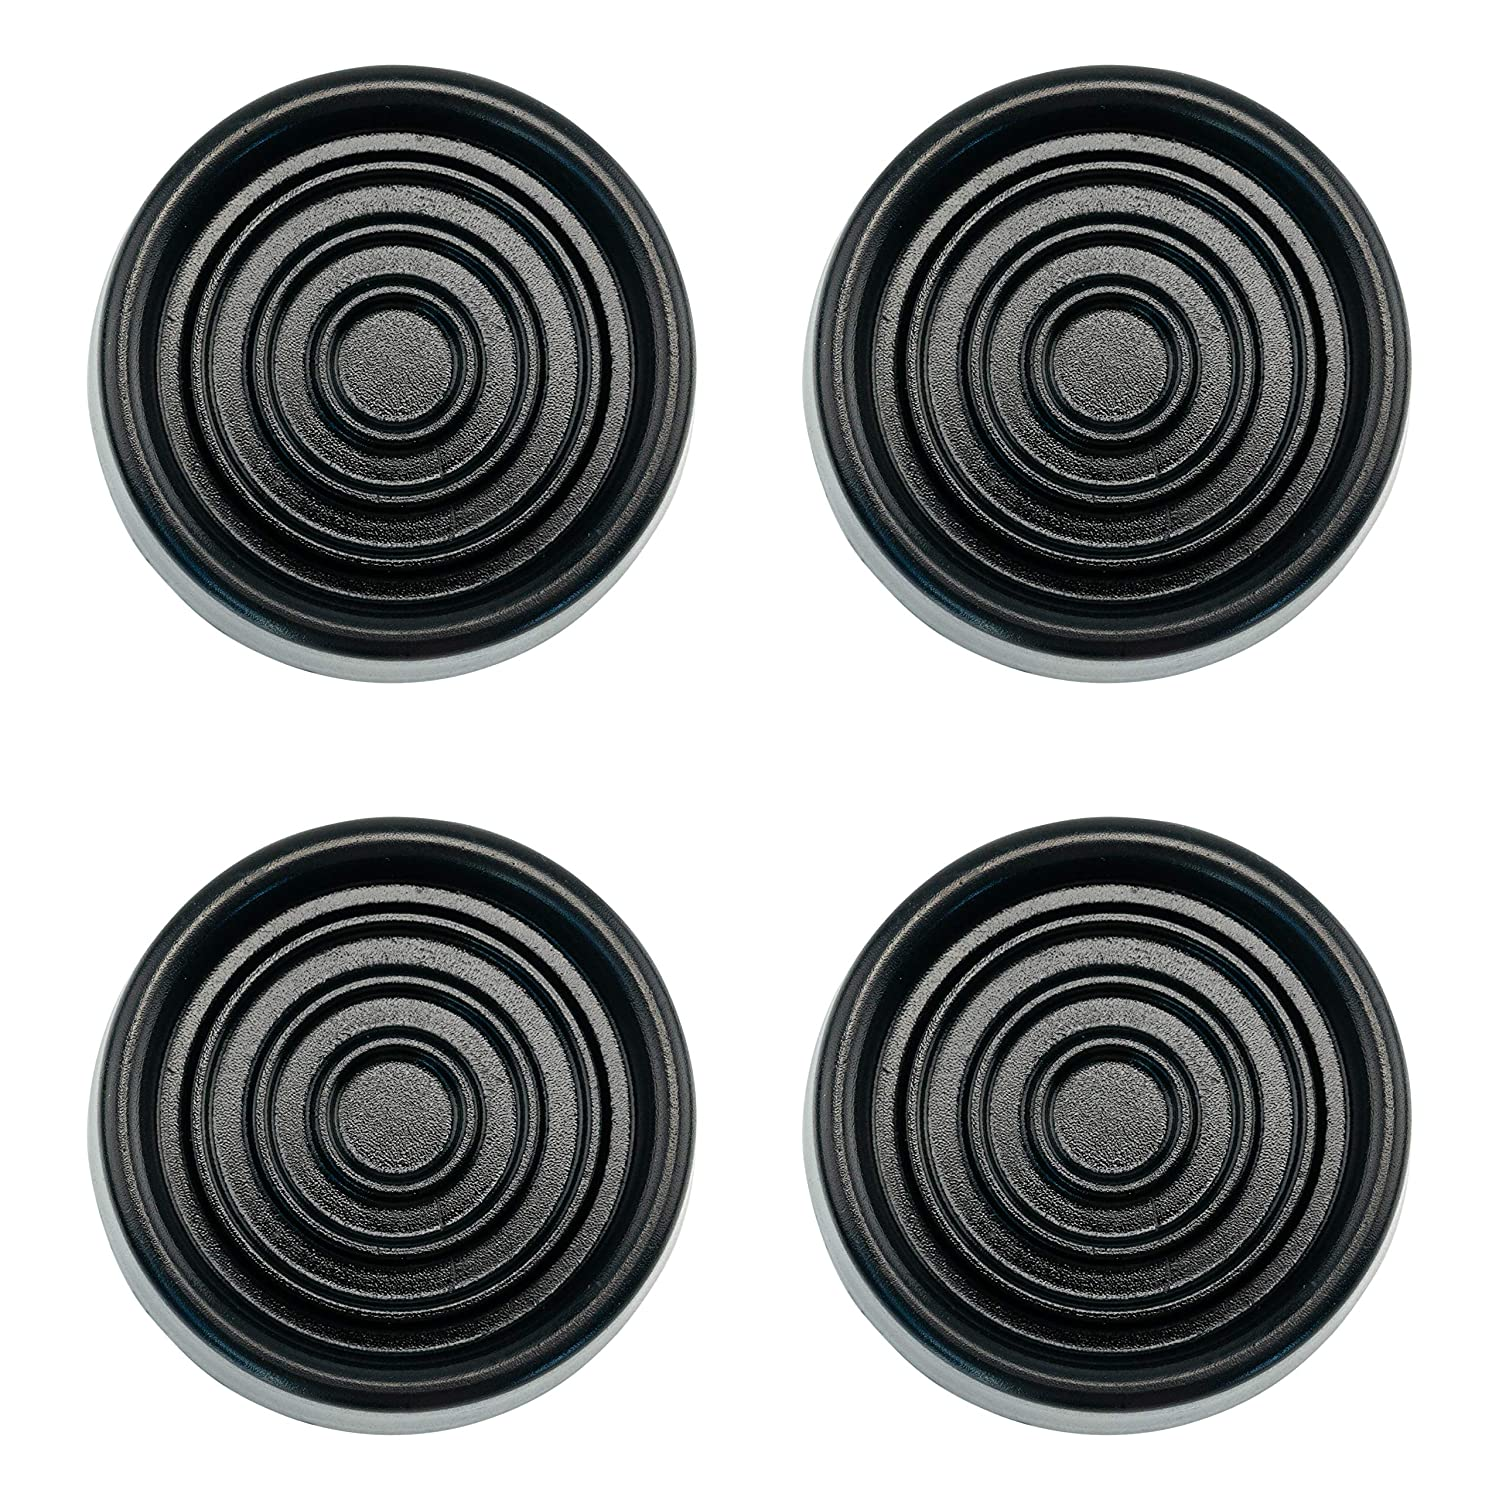 Sorbothane Anti-Vibration Anti-Walk Washer and Dryer Machine Floor Pads (Black)